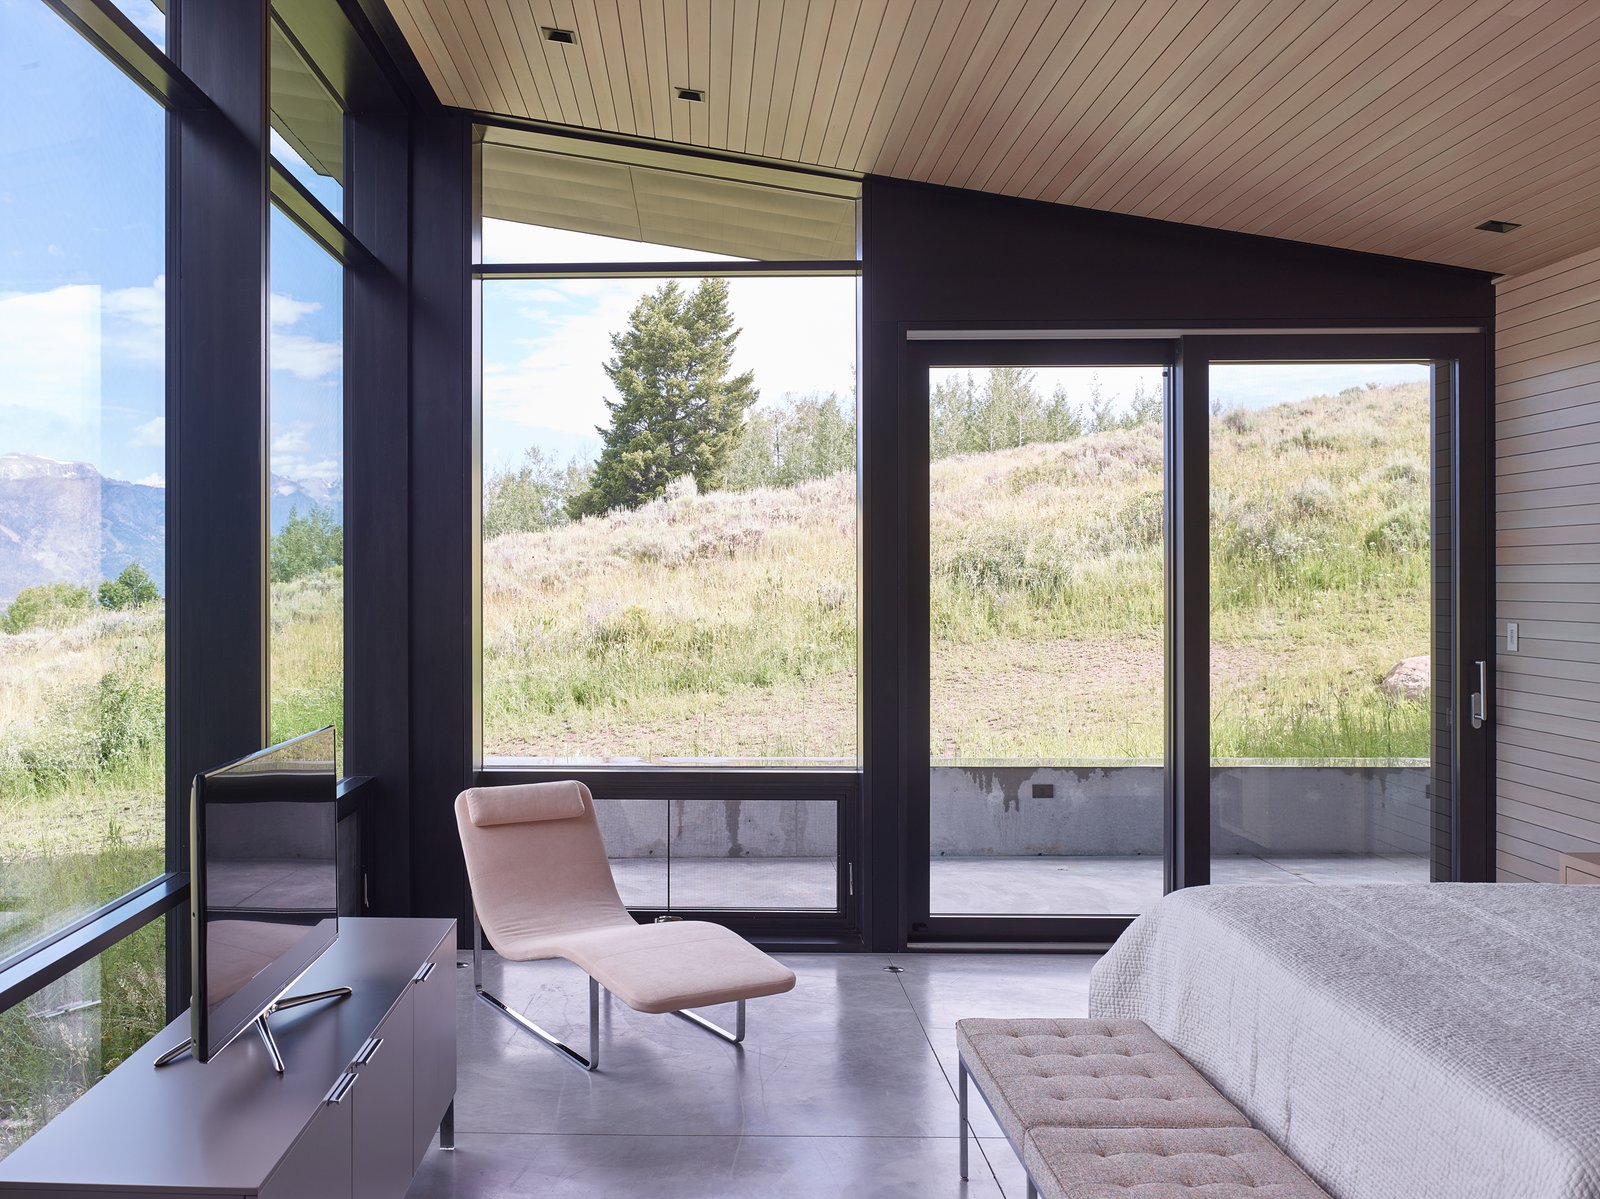 Bedroom, Bed, Chair, Concrete Floor, Bench, and Recessed Lighting The master bedroom shares in the floor-to-ceiling views, allowing symbiosis with the meadow outside.  Wyoming Residence by Abramson Teiger Architects